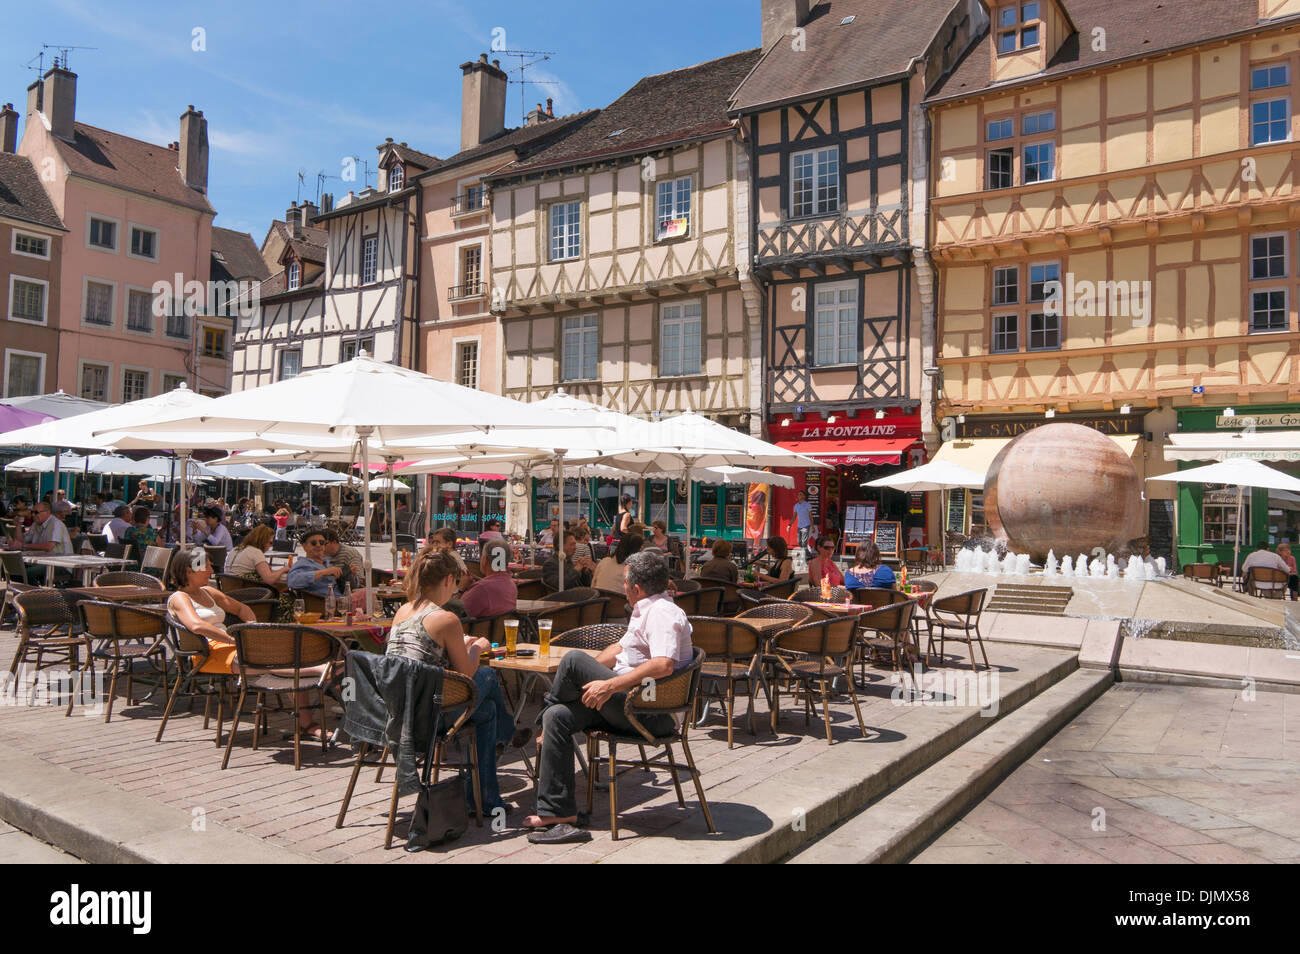 people eating at outdoor restaurants place st vincent chalon sur stock photo royalty free image. Black Bedroom Furniture Sets. Home Design Ideas